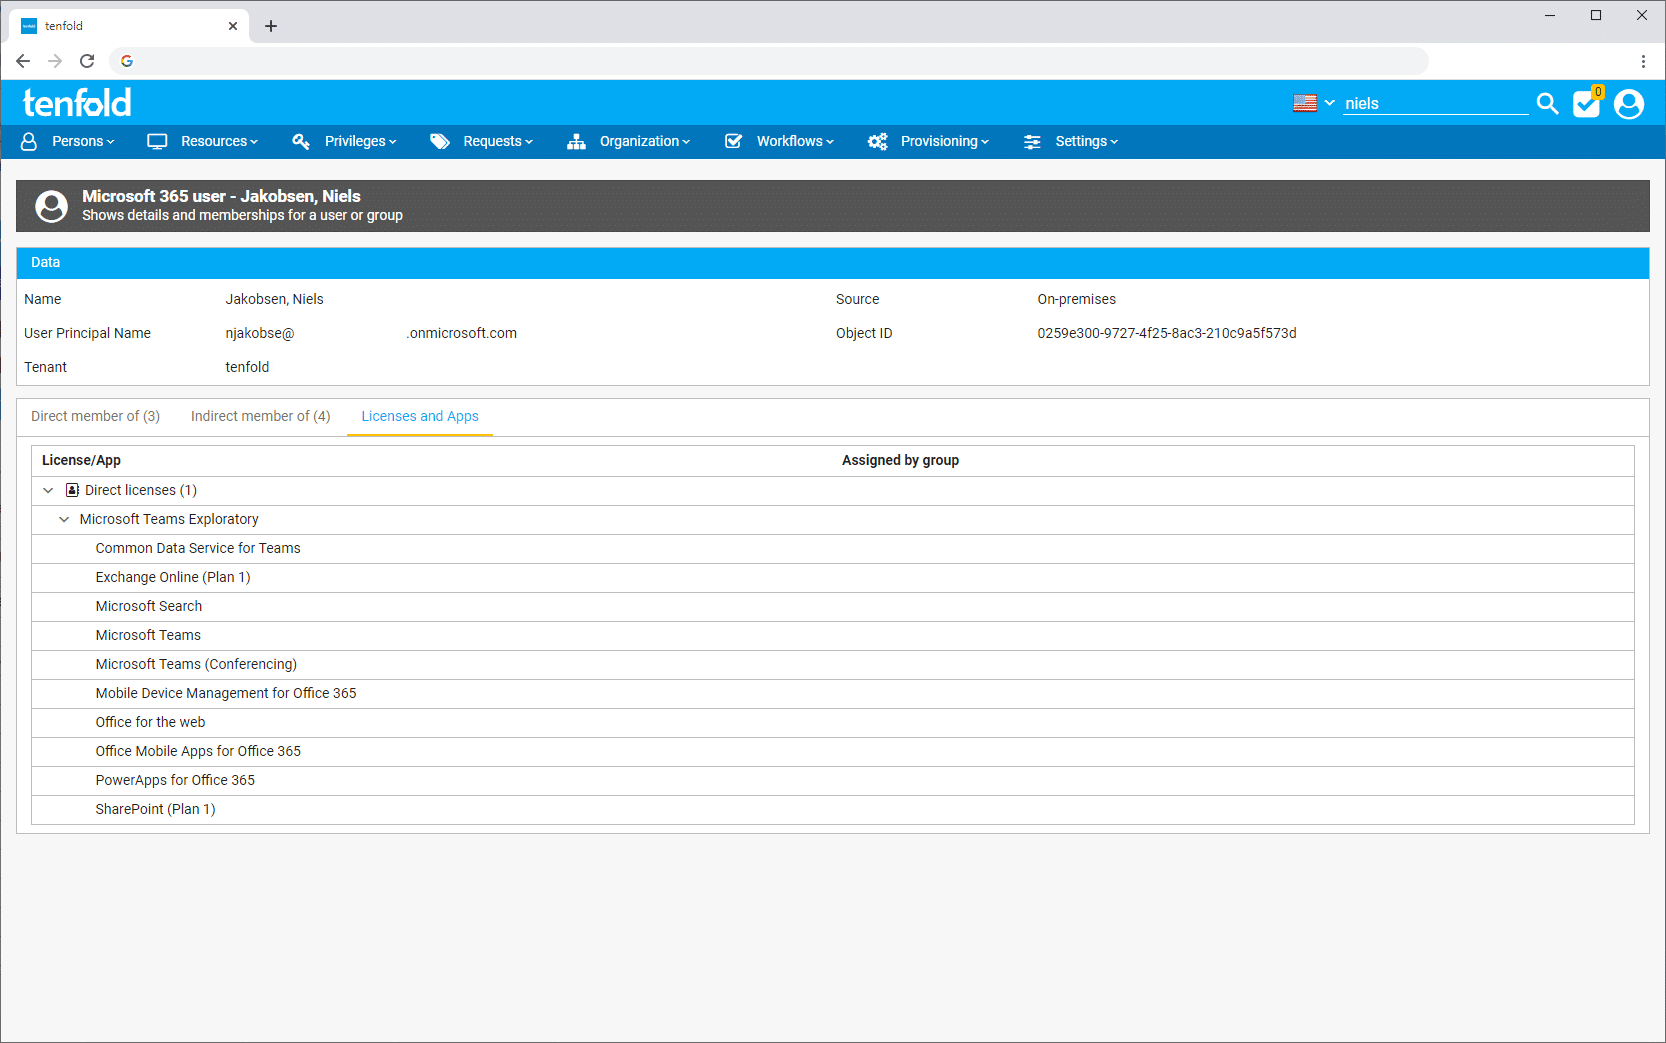 Screenshot of the IAM software tenfold's user interface. It shows the screen where you can view details and memberships of individual users or groups.